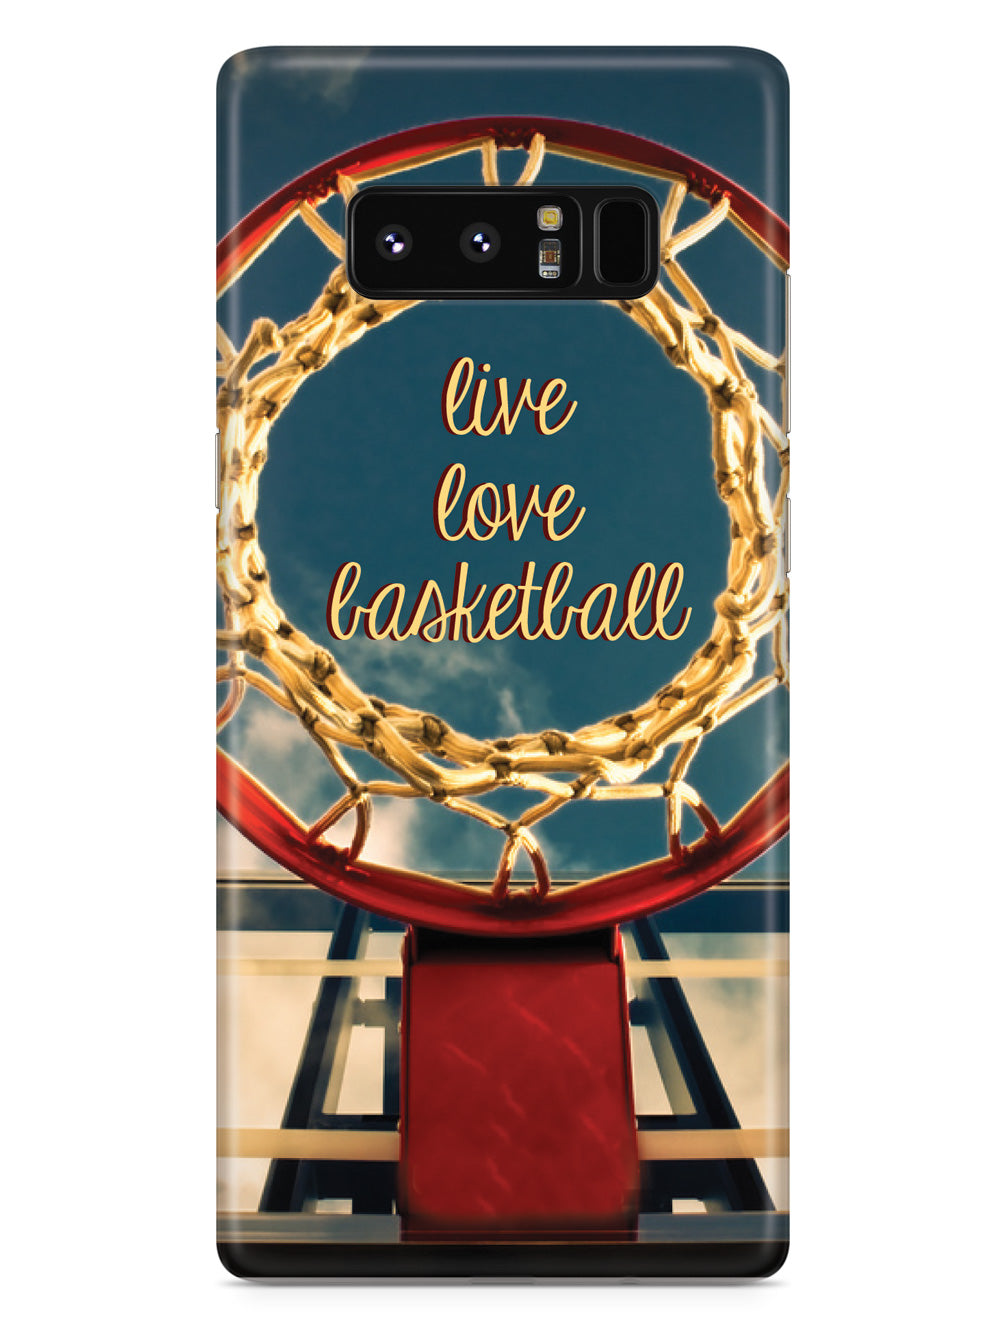 Live Love Basketball Case